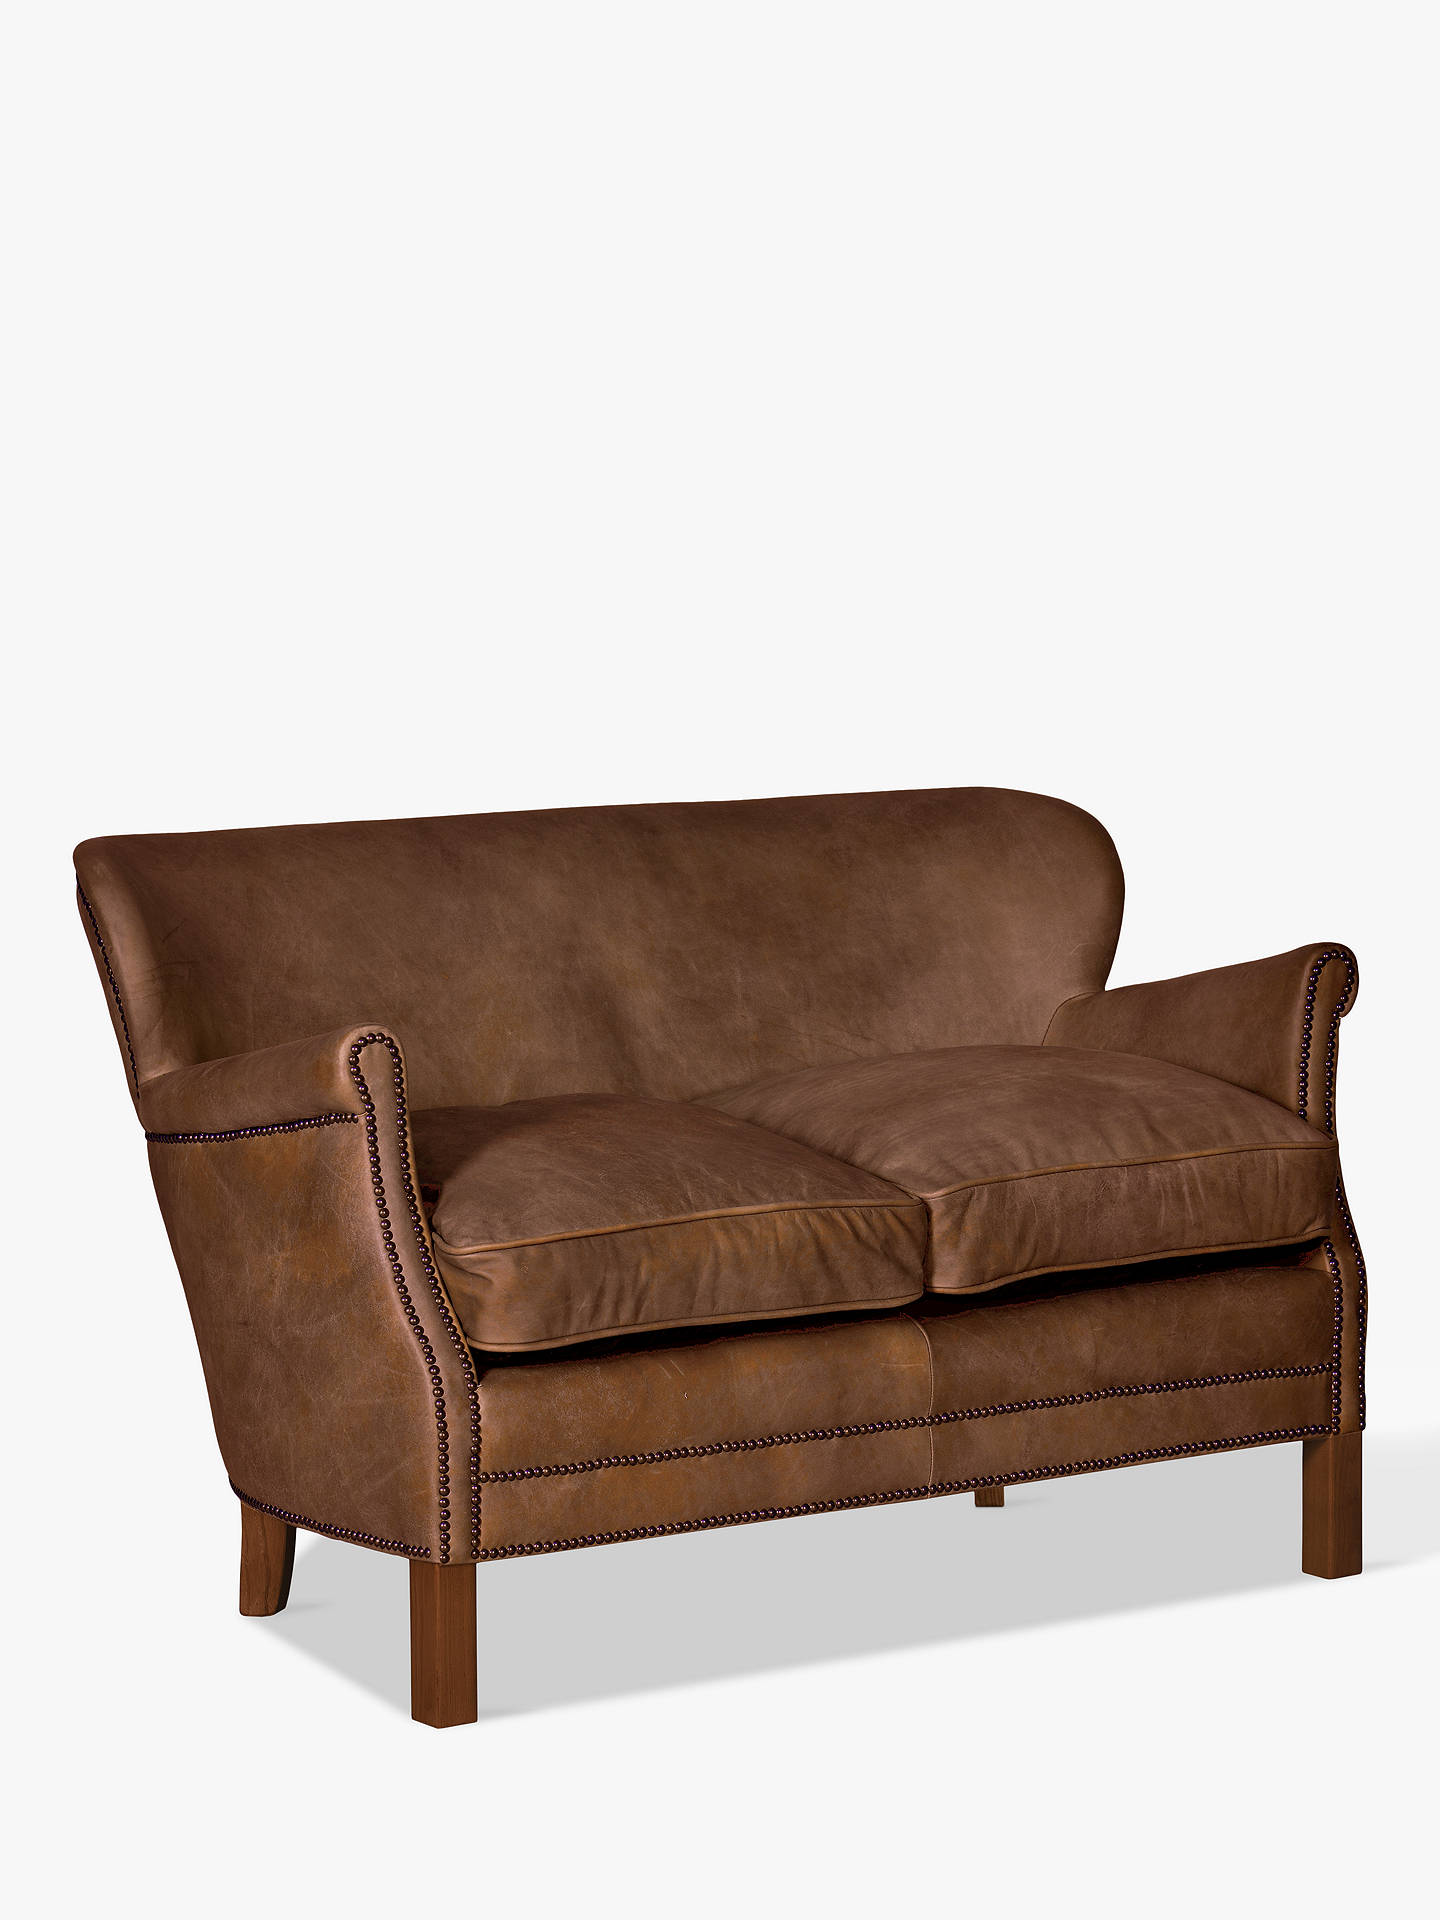 Halo Little Professor Petite 2 Seater Leather Sofa, Antique Whisky